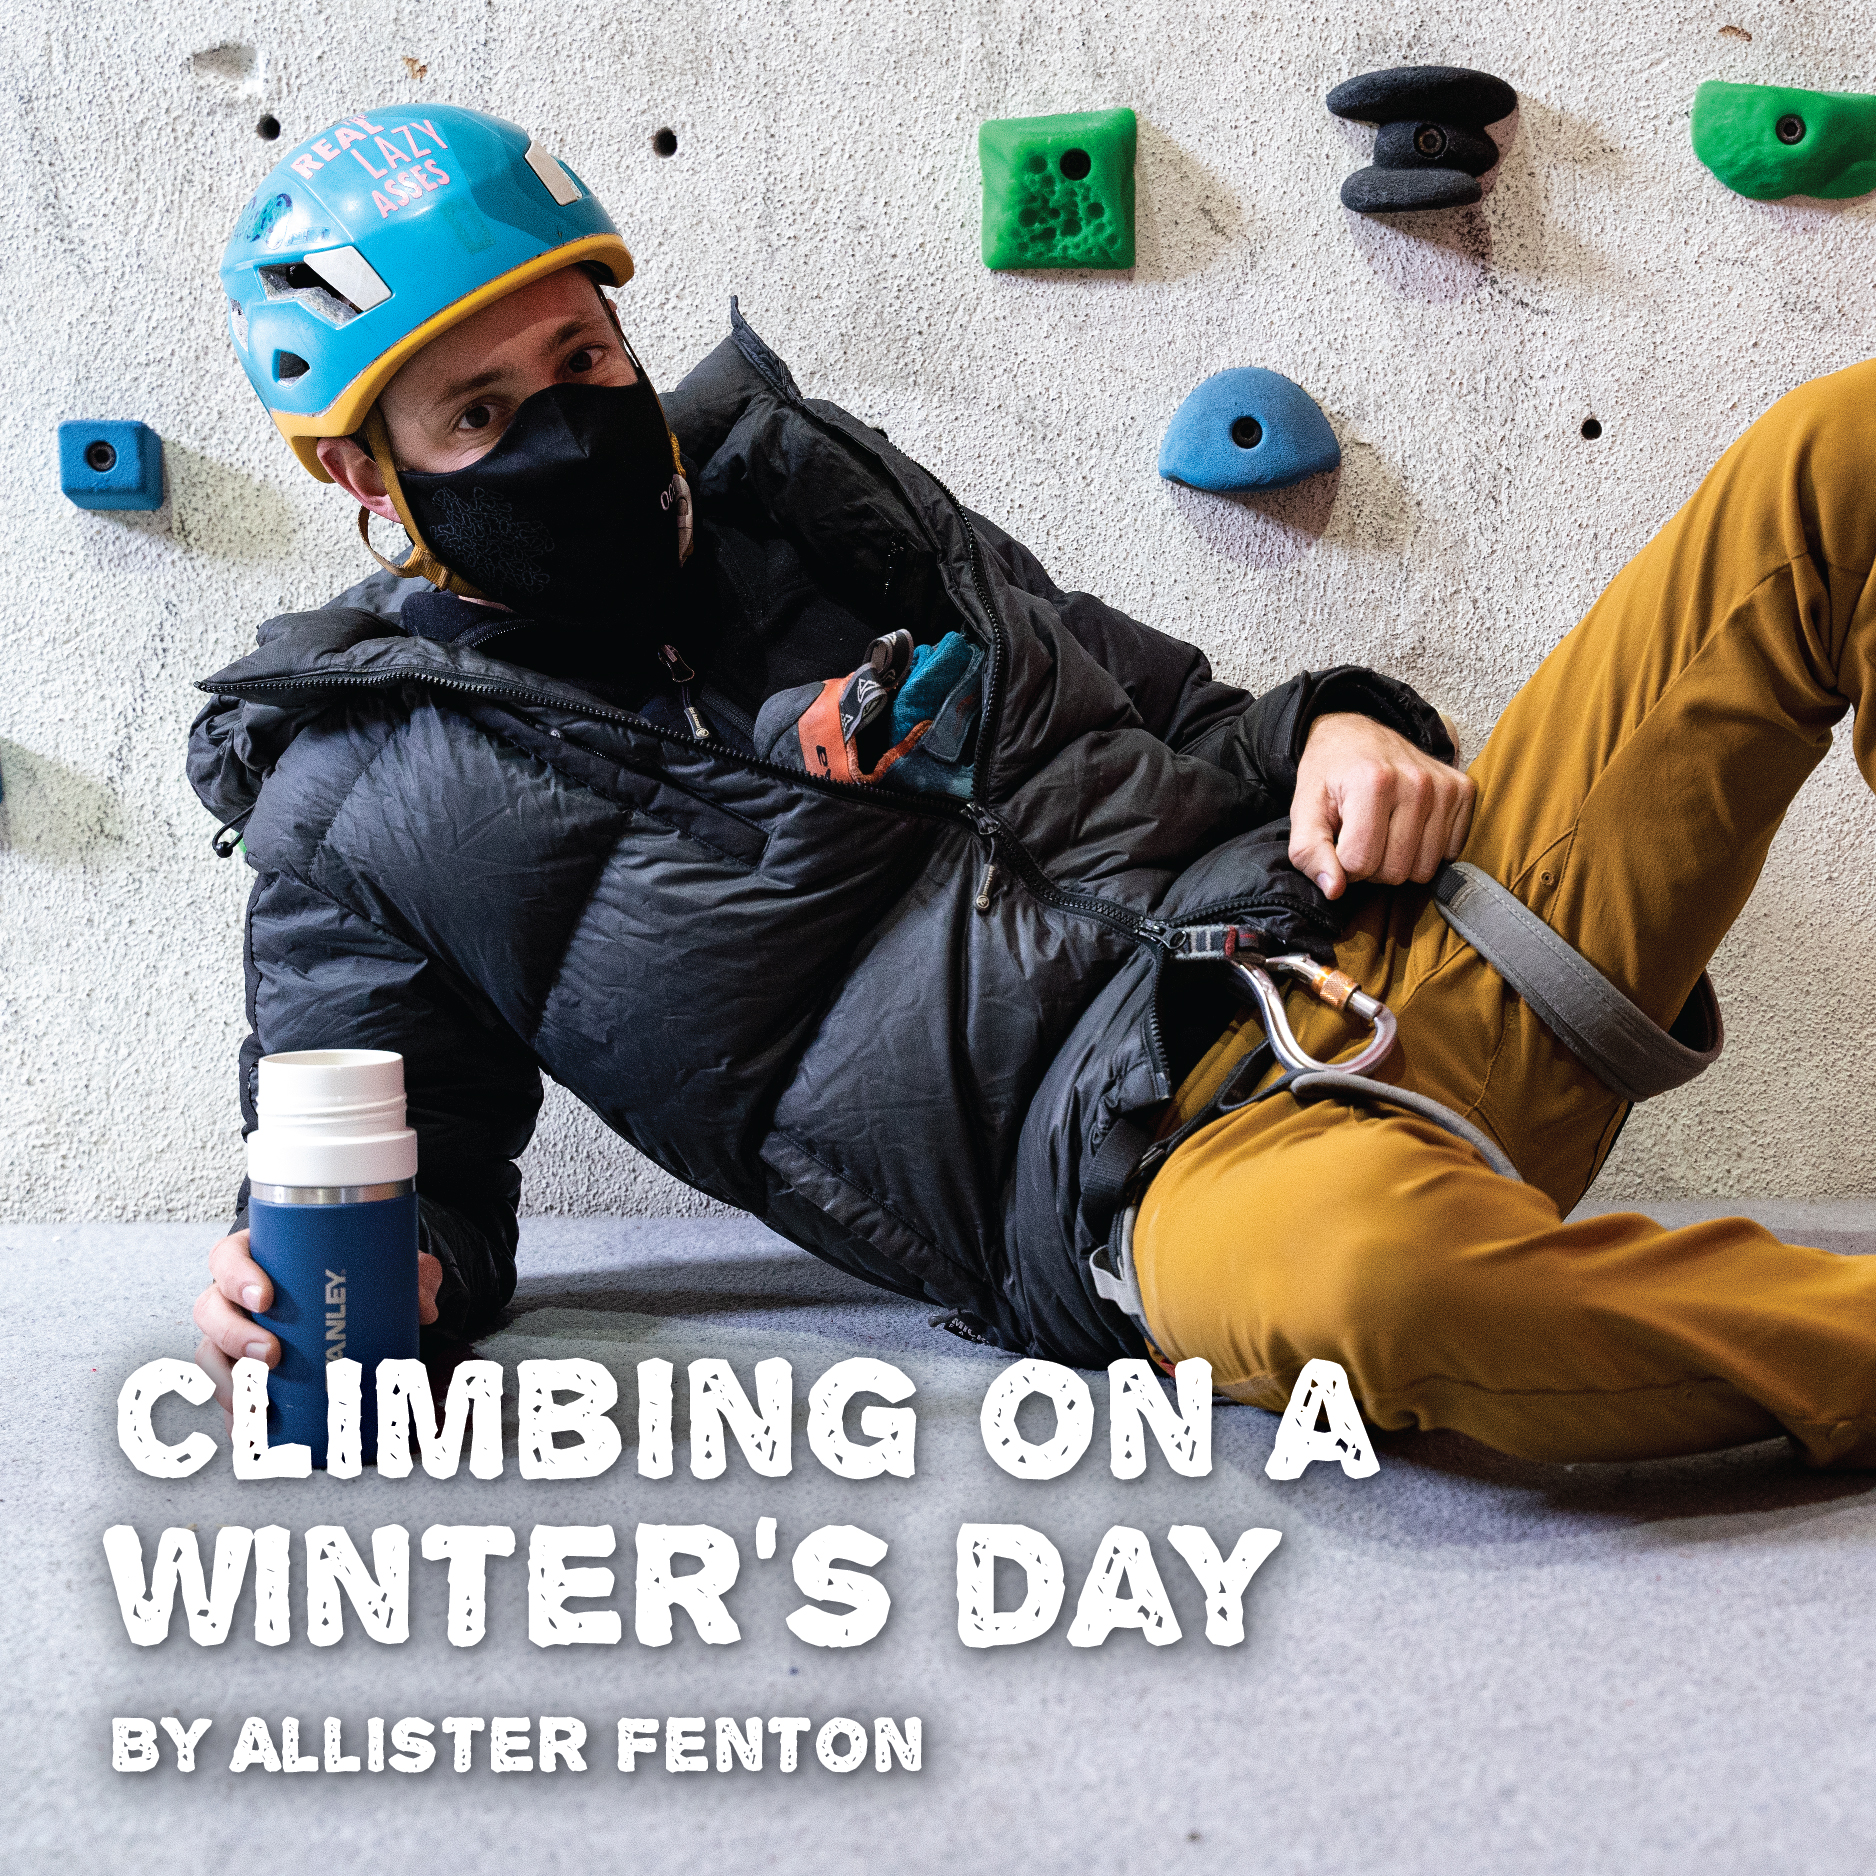 Climbing on a winter's day